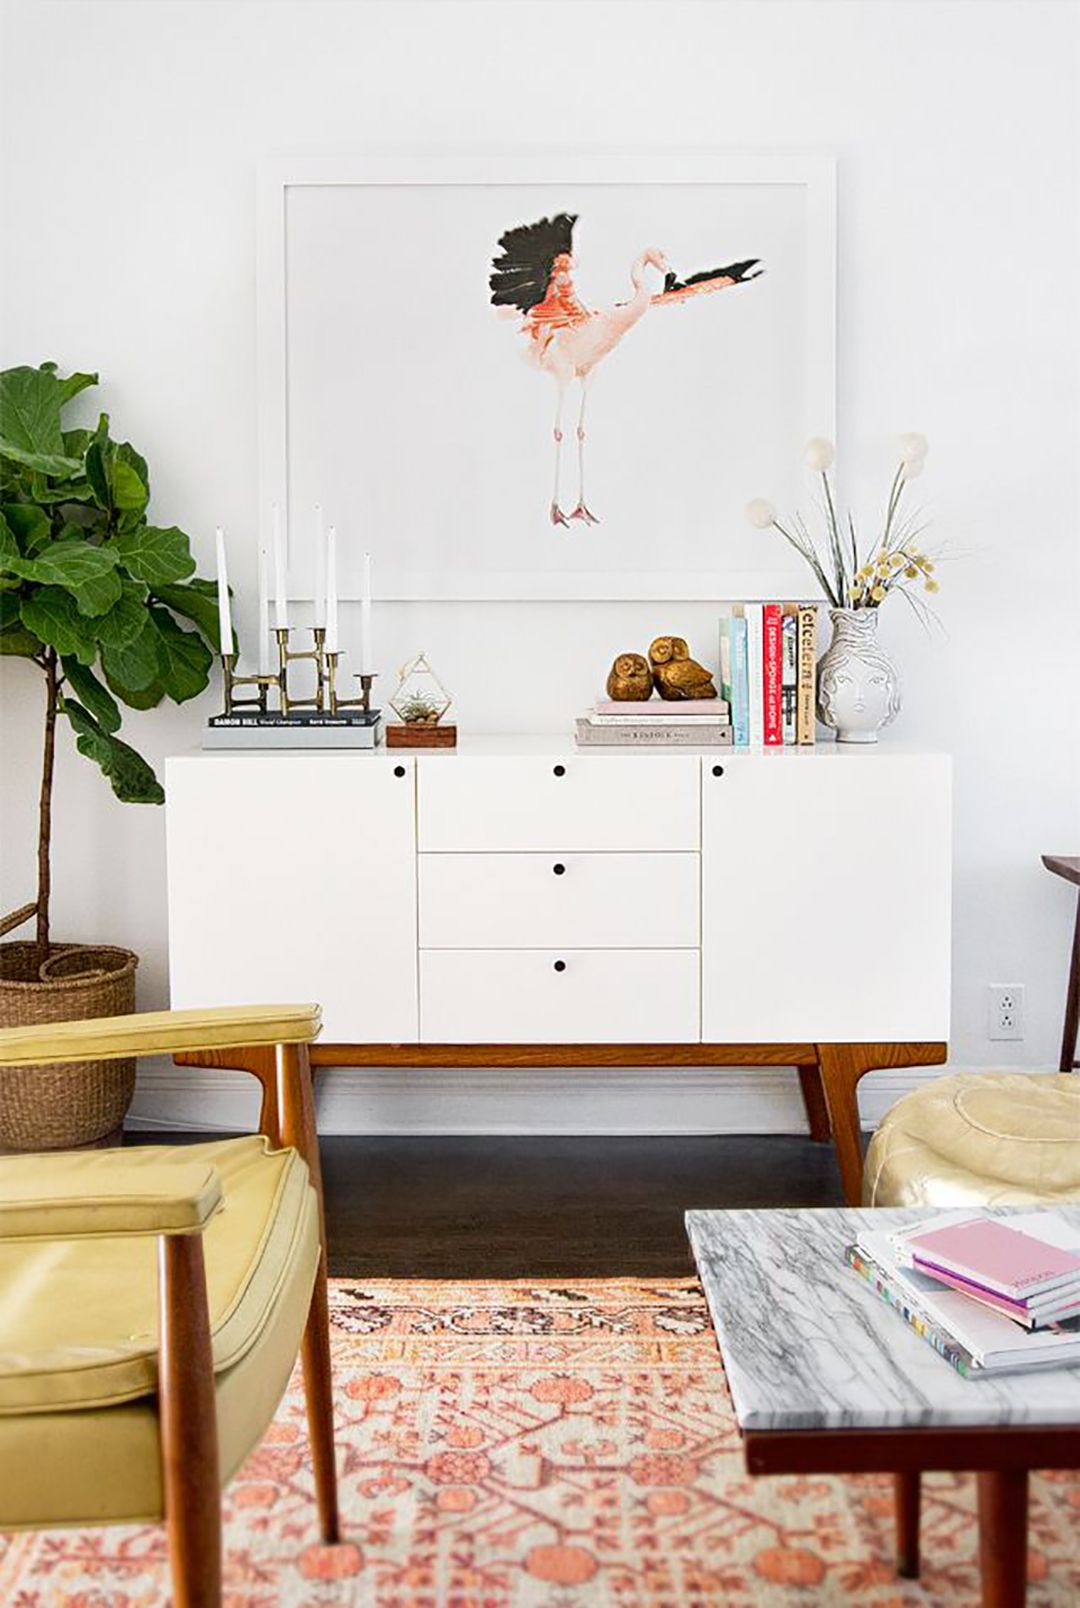 Living Room With Mid Century Credenza In White Color The Credenzas Are Fascinating Furniture Pieces Check more at http://www.wearefound.com/the-credenzas-are-fascinating-furniture-pieces/